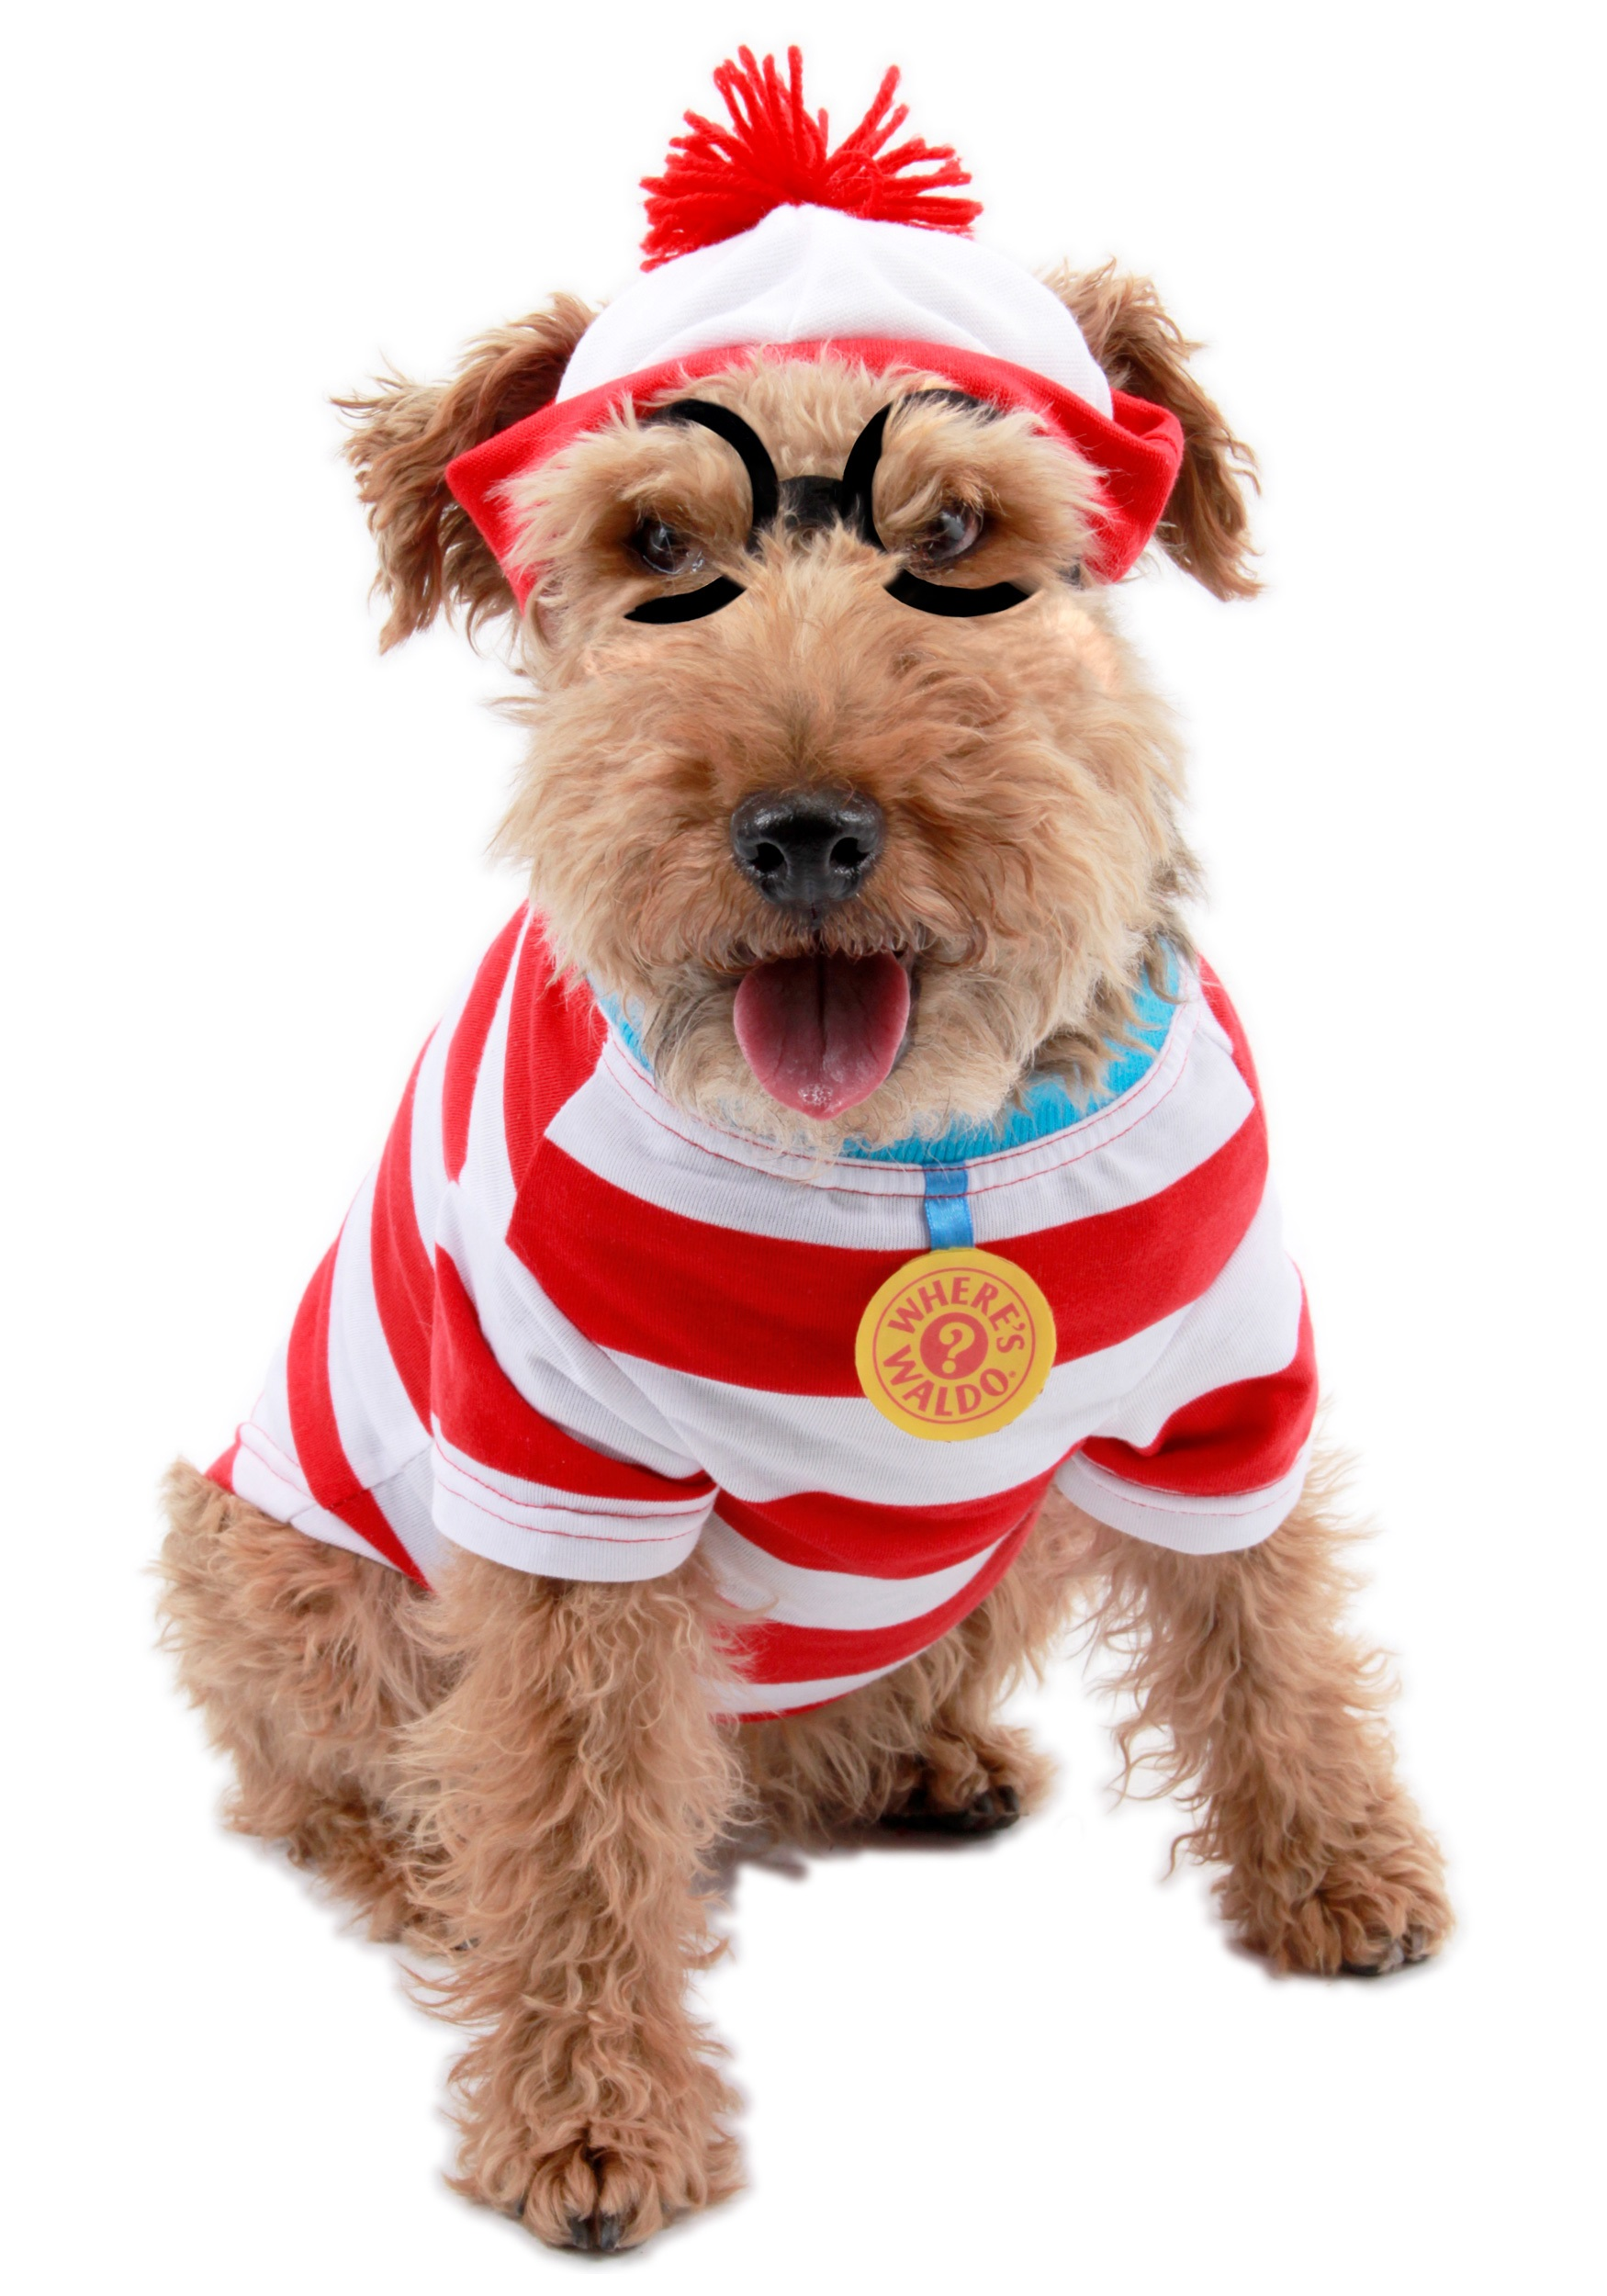 waldo woof dog costume. Black Bedroom Furniture Sets. Home Design Ideas